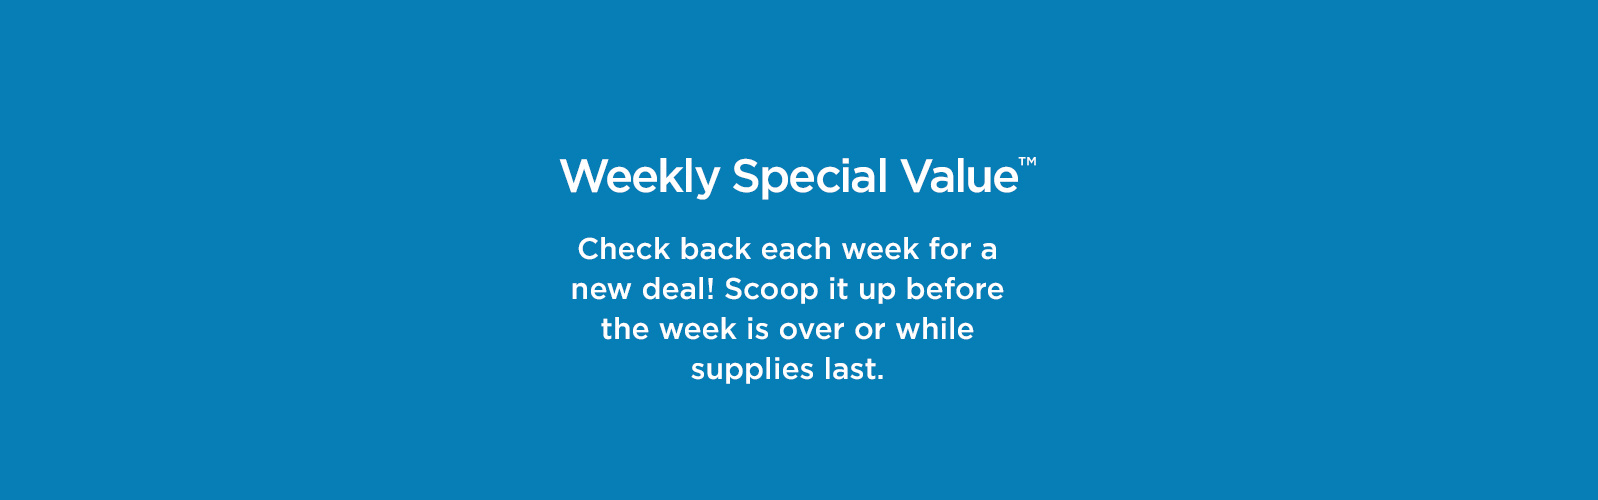 Weekly Special Value. Check back each week for a new deal! Scoop it up before the week is over or while supplies last.